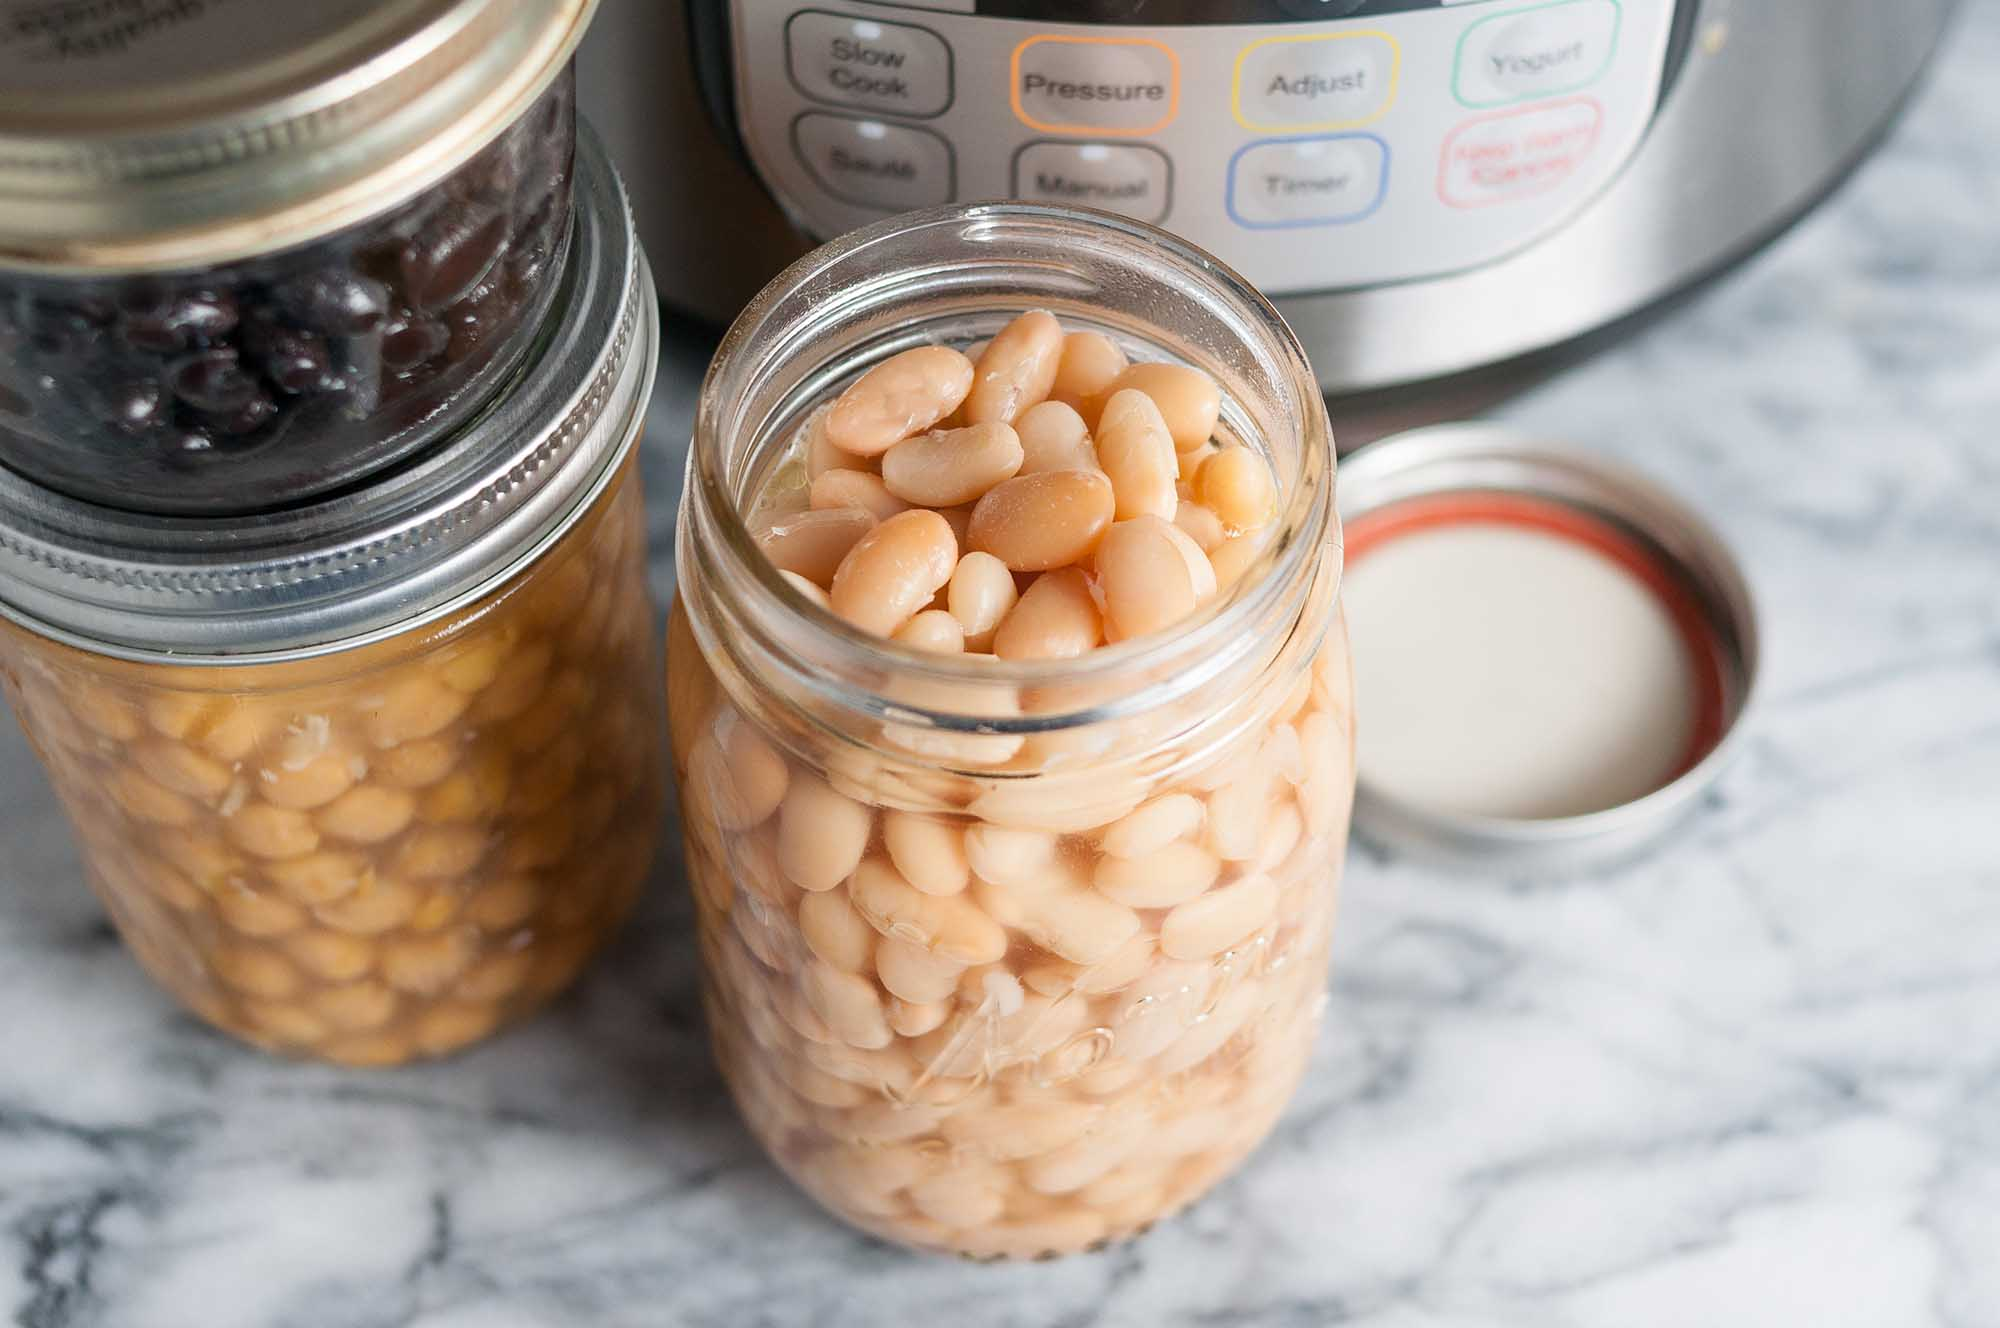 How To Make Fast, No-Soak Beans in the Pressure Cooker